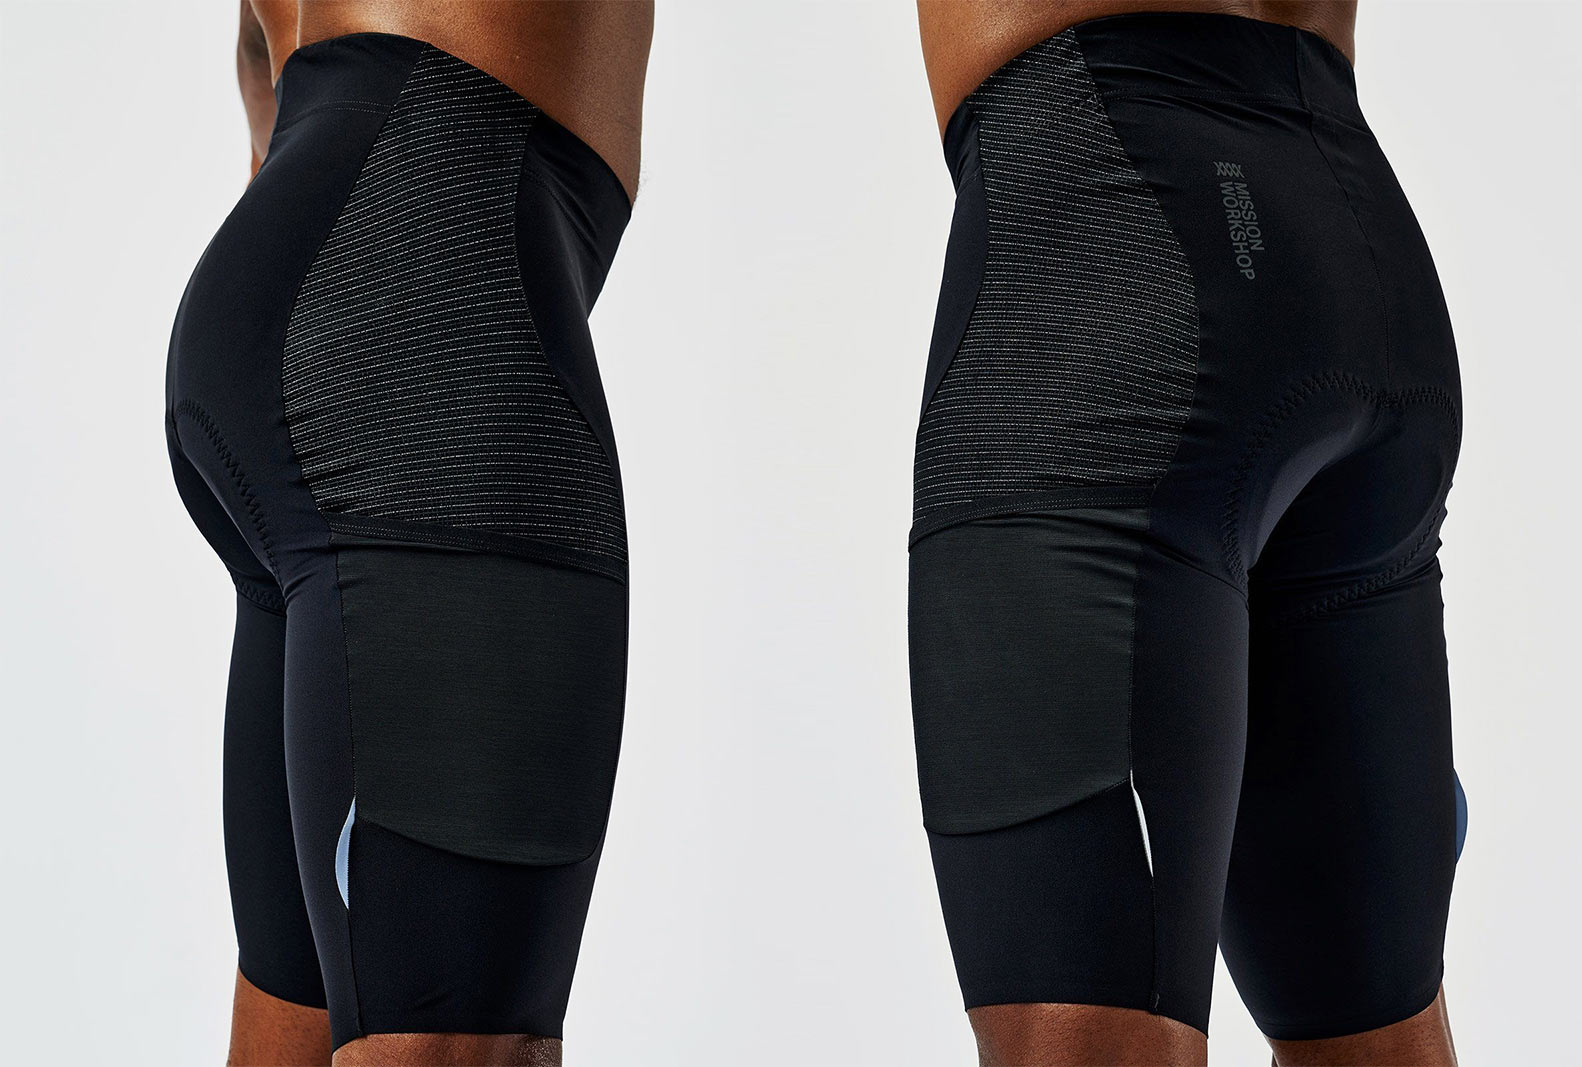 mission pro cycling shorts from mission workshop